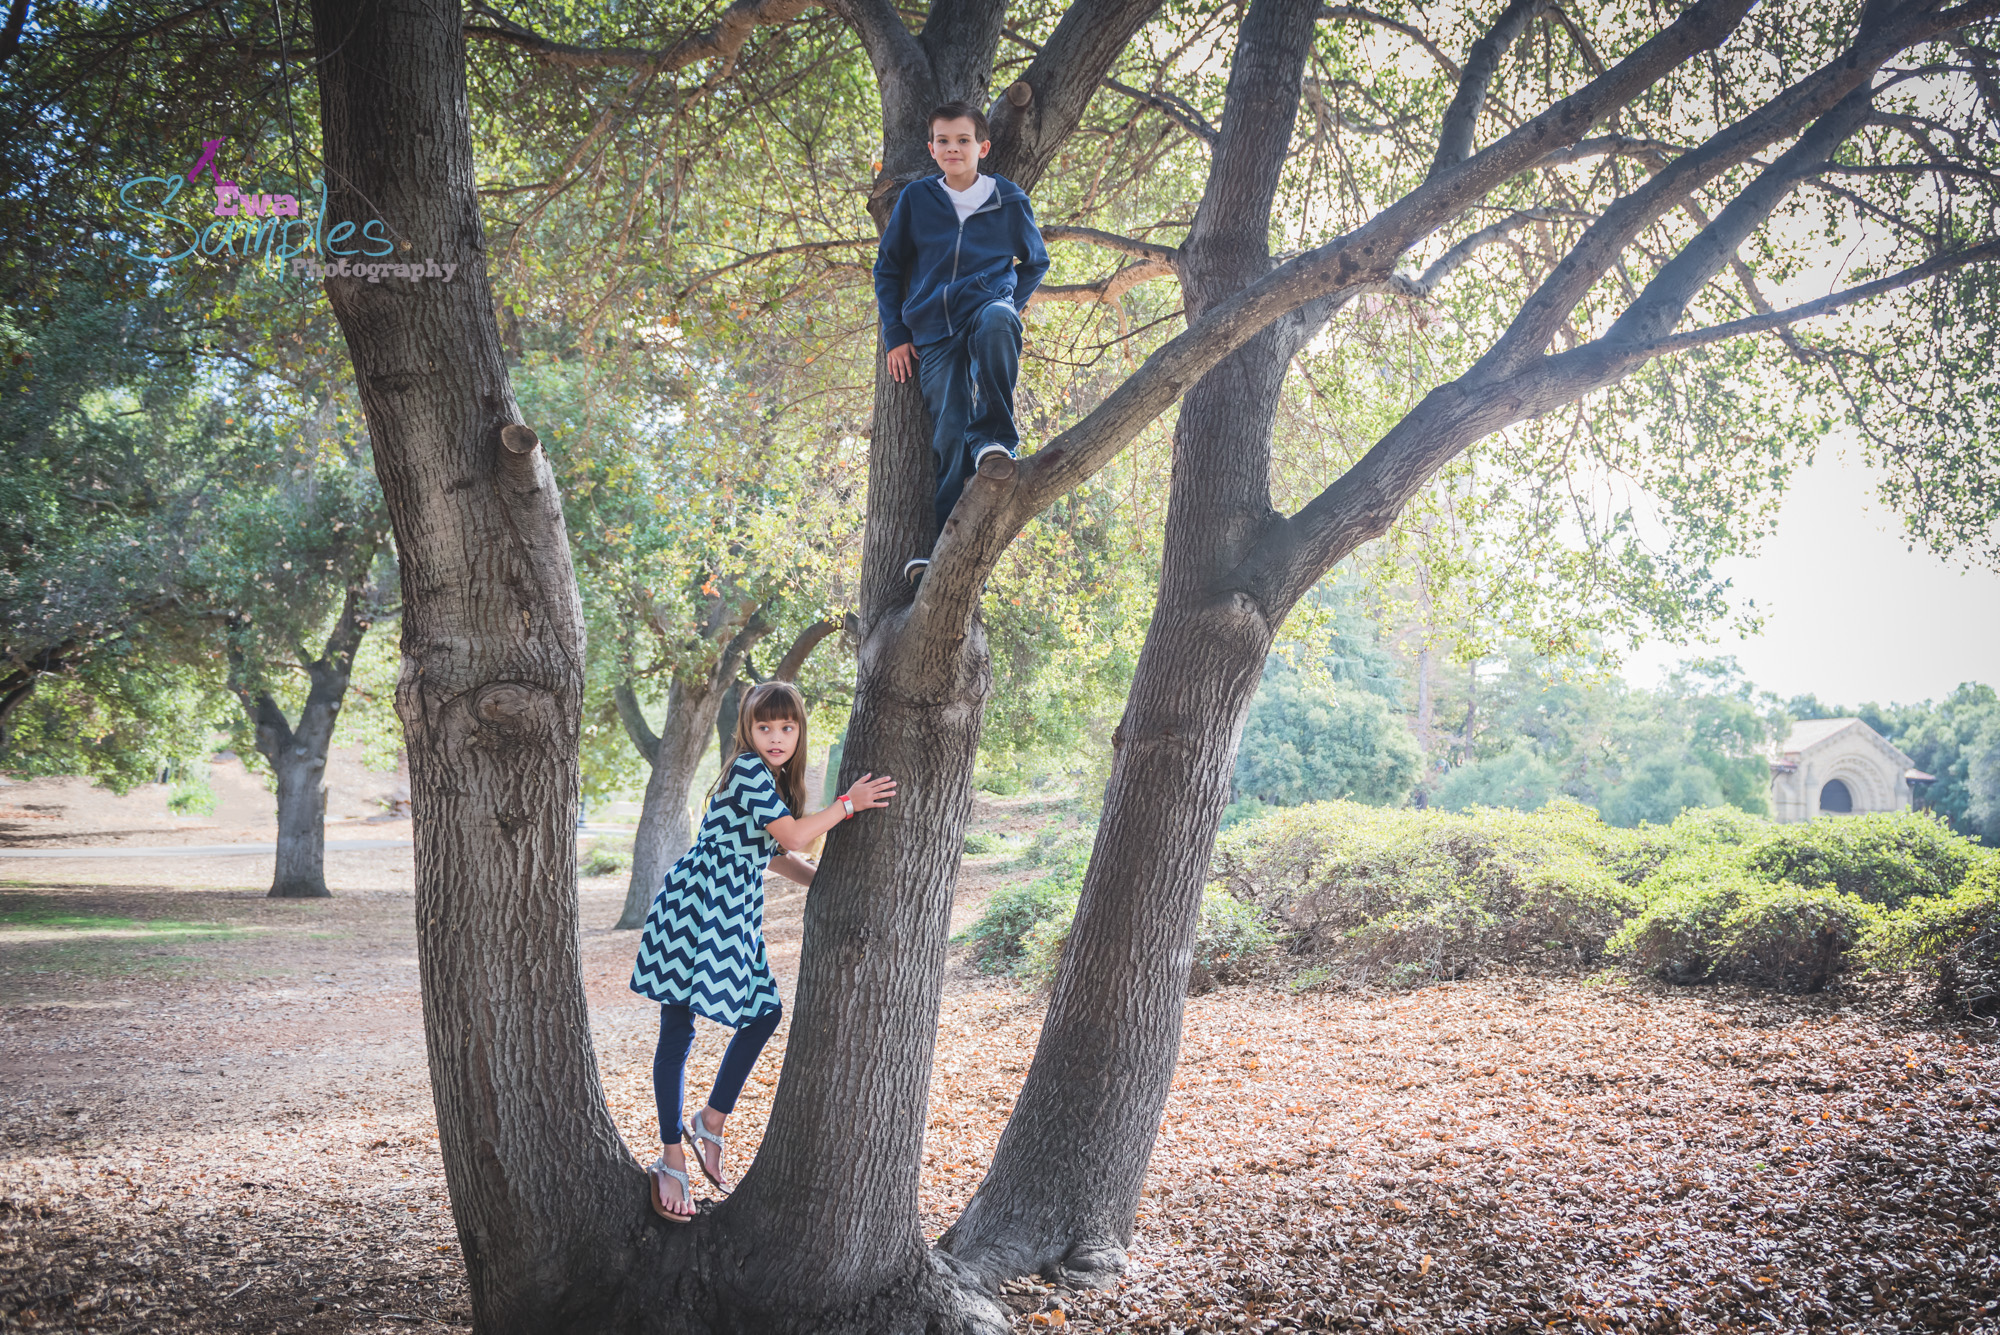 siblings_photography_ideas_Stanford_family_photographer-10